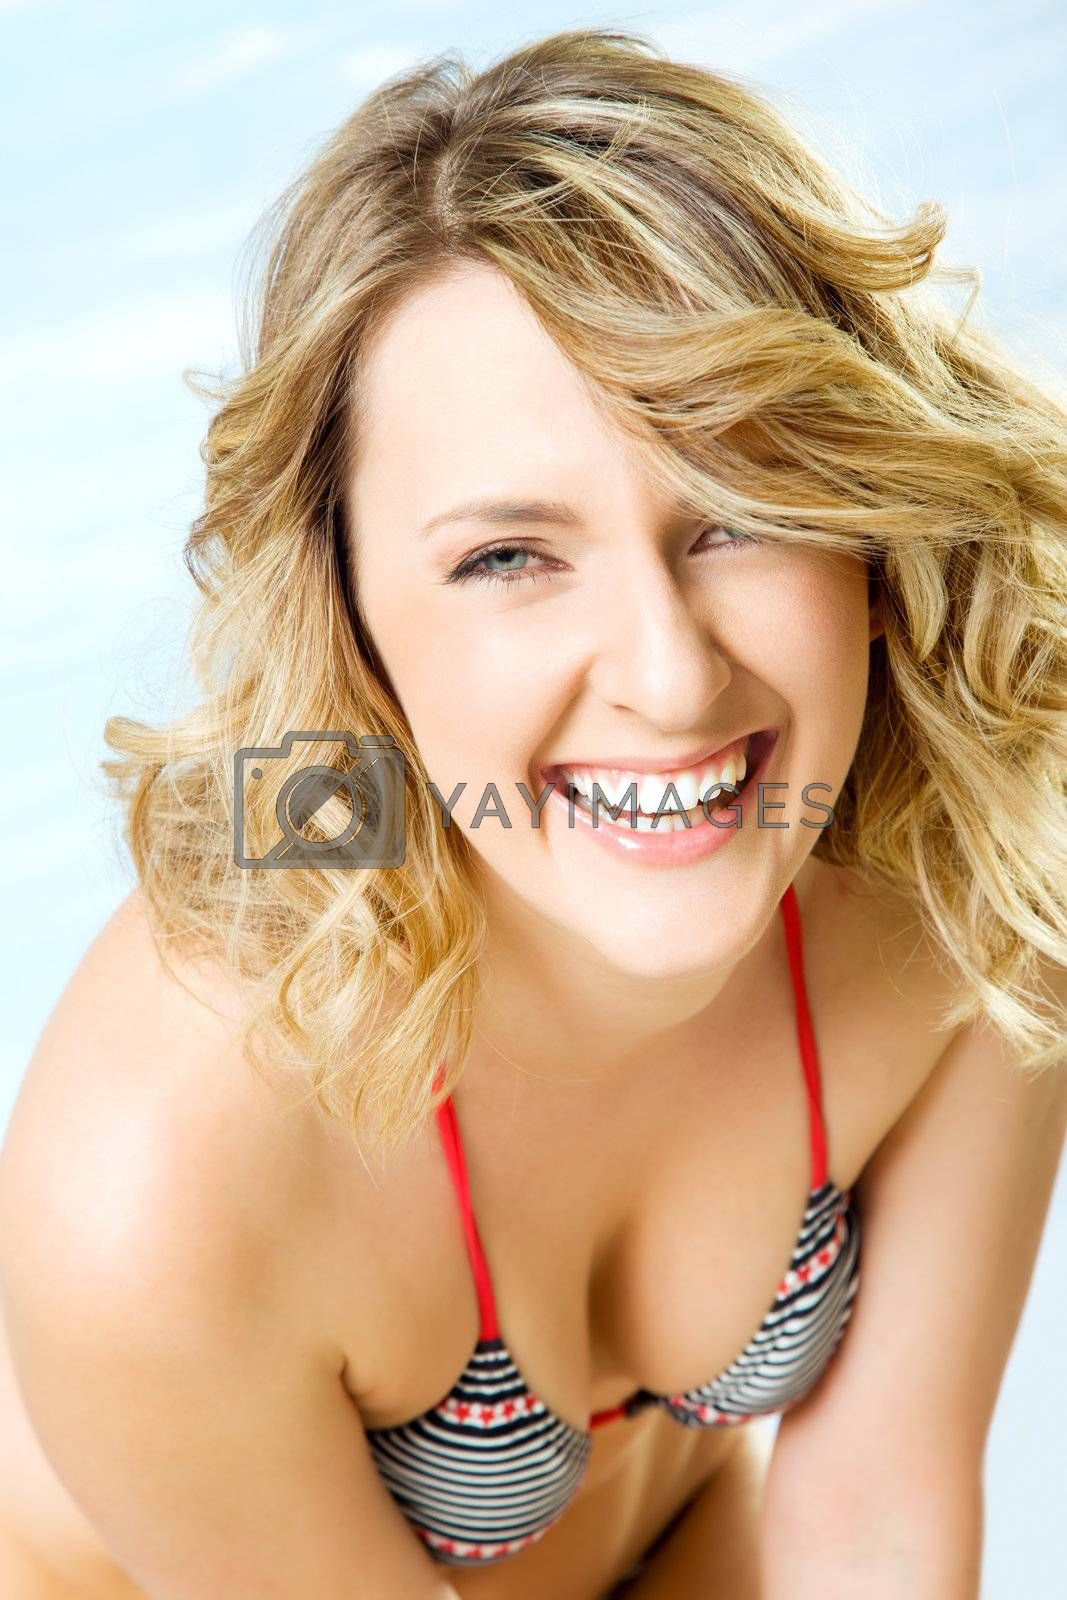 Close-up of happy beautiful blond woman in swimsuit, smiling at camera